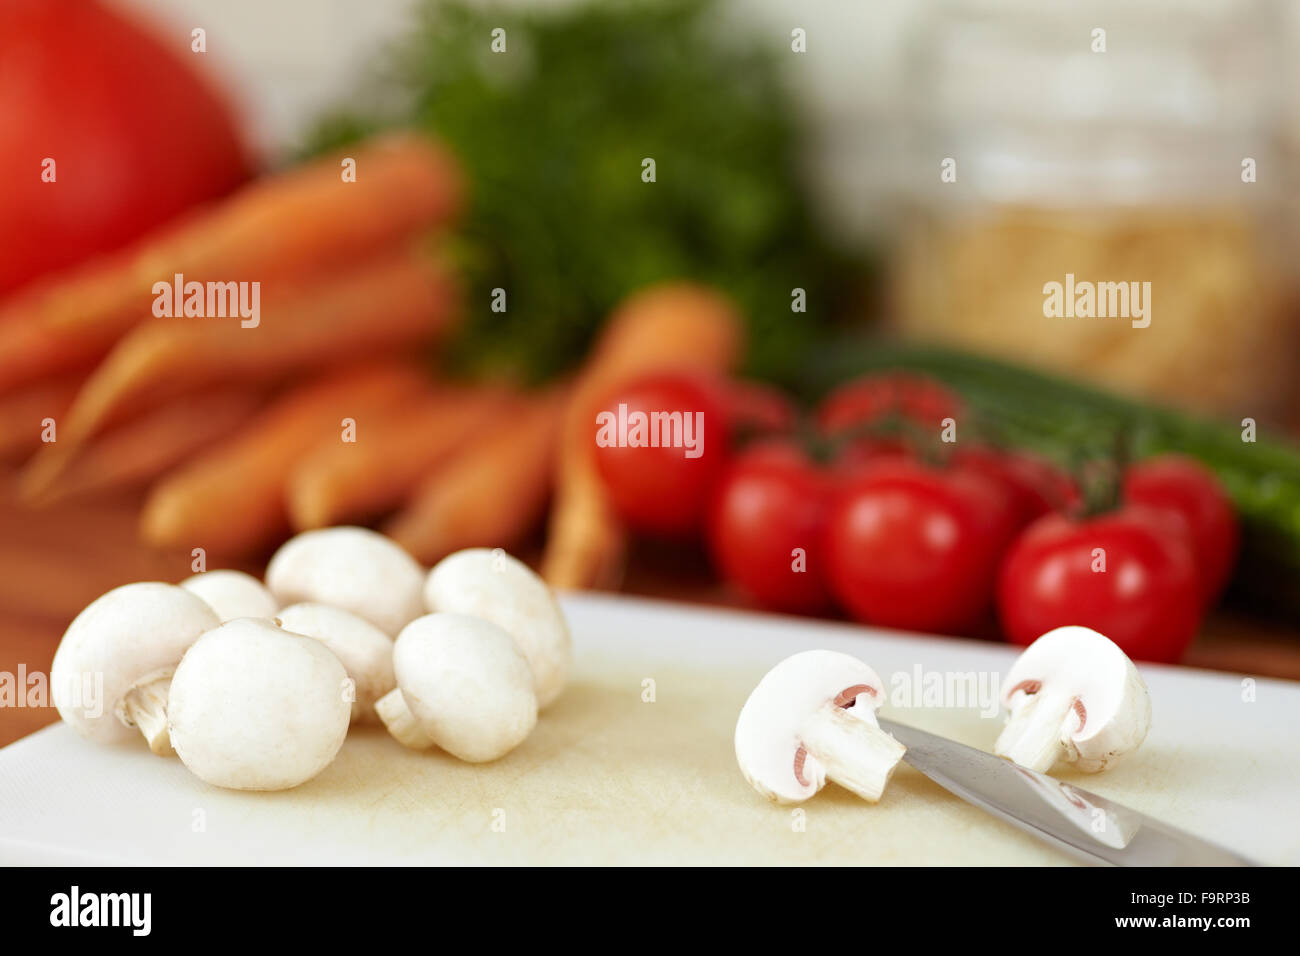 Mushrooms im genes de stock mushrooms fotos de stock alamy for Como cocinar cantharellus